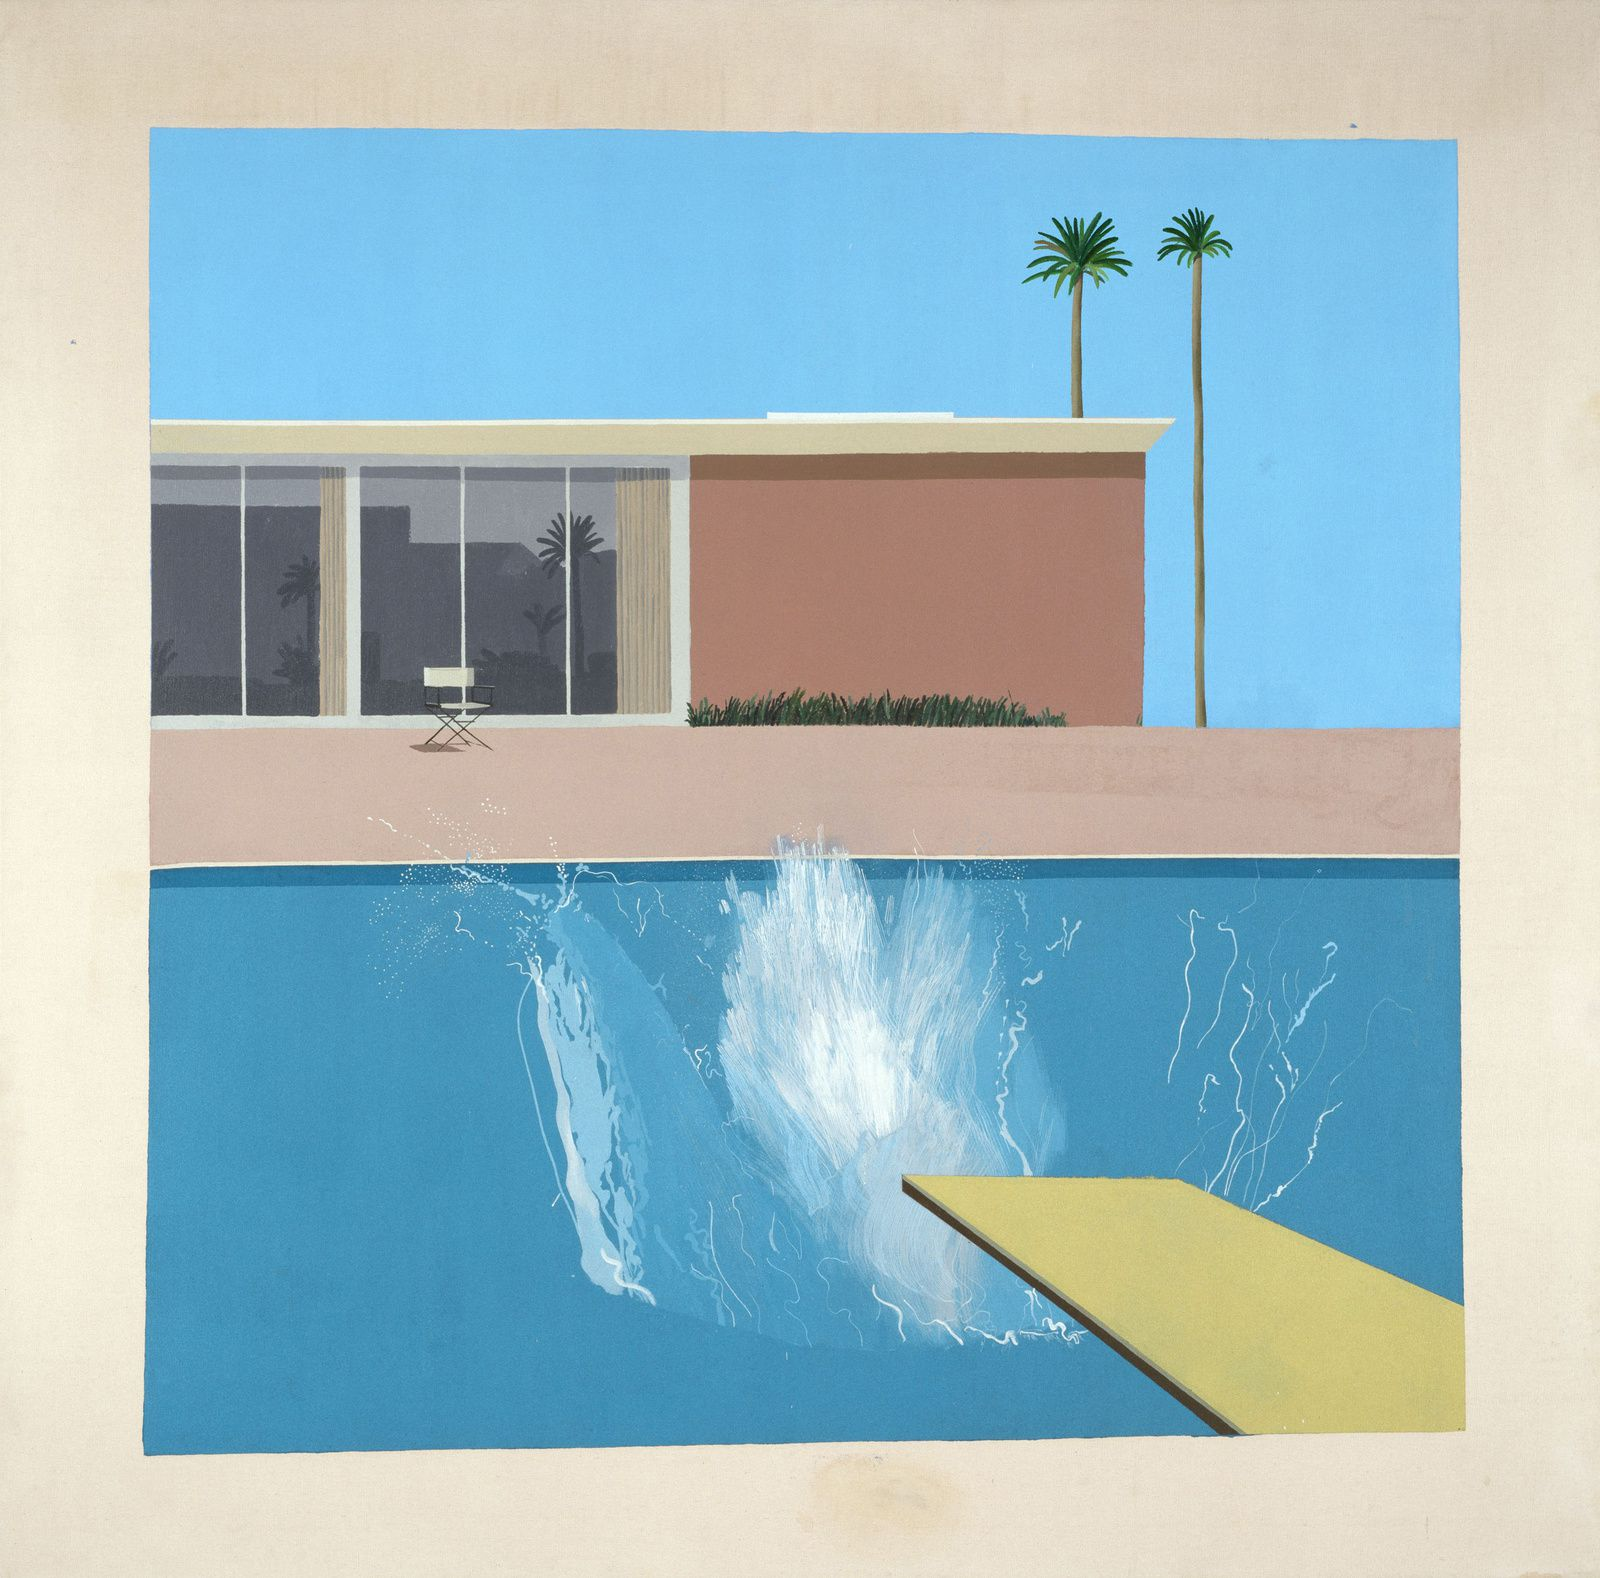 """A Bigger Splash"", 1967 de David HOCKNEY - Courtesy Collection Tate, London"